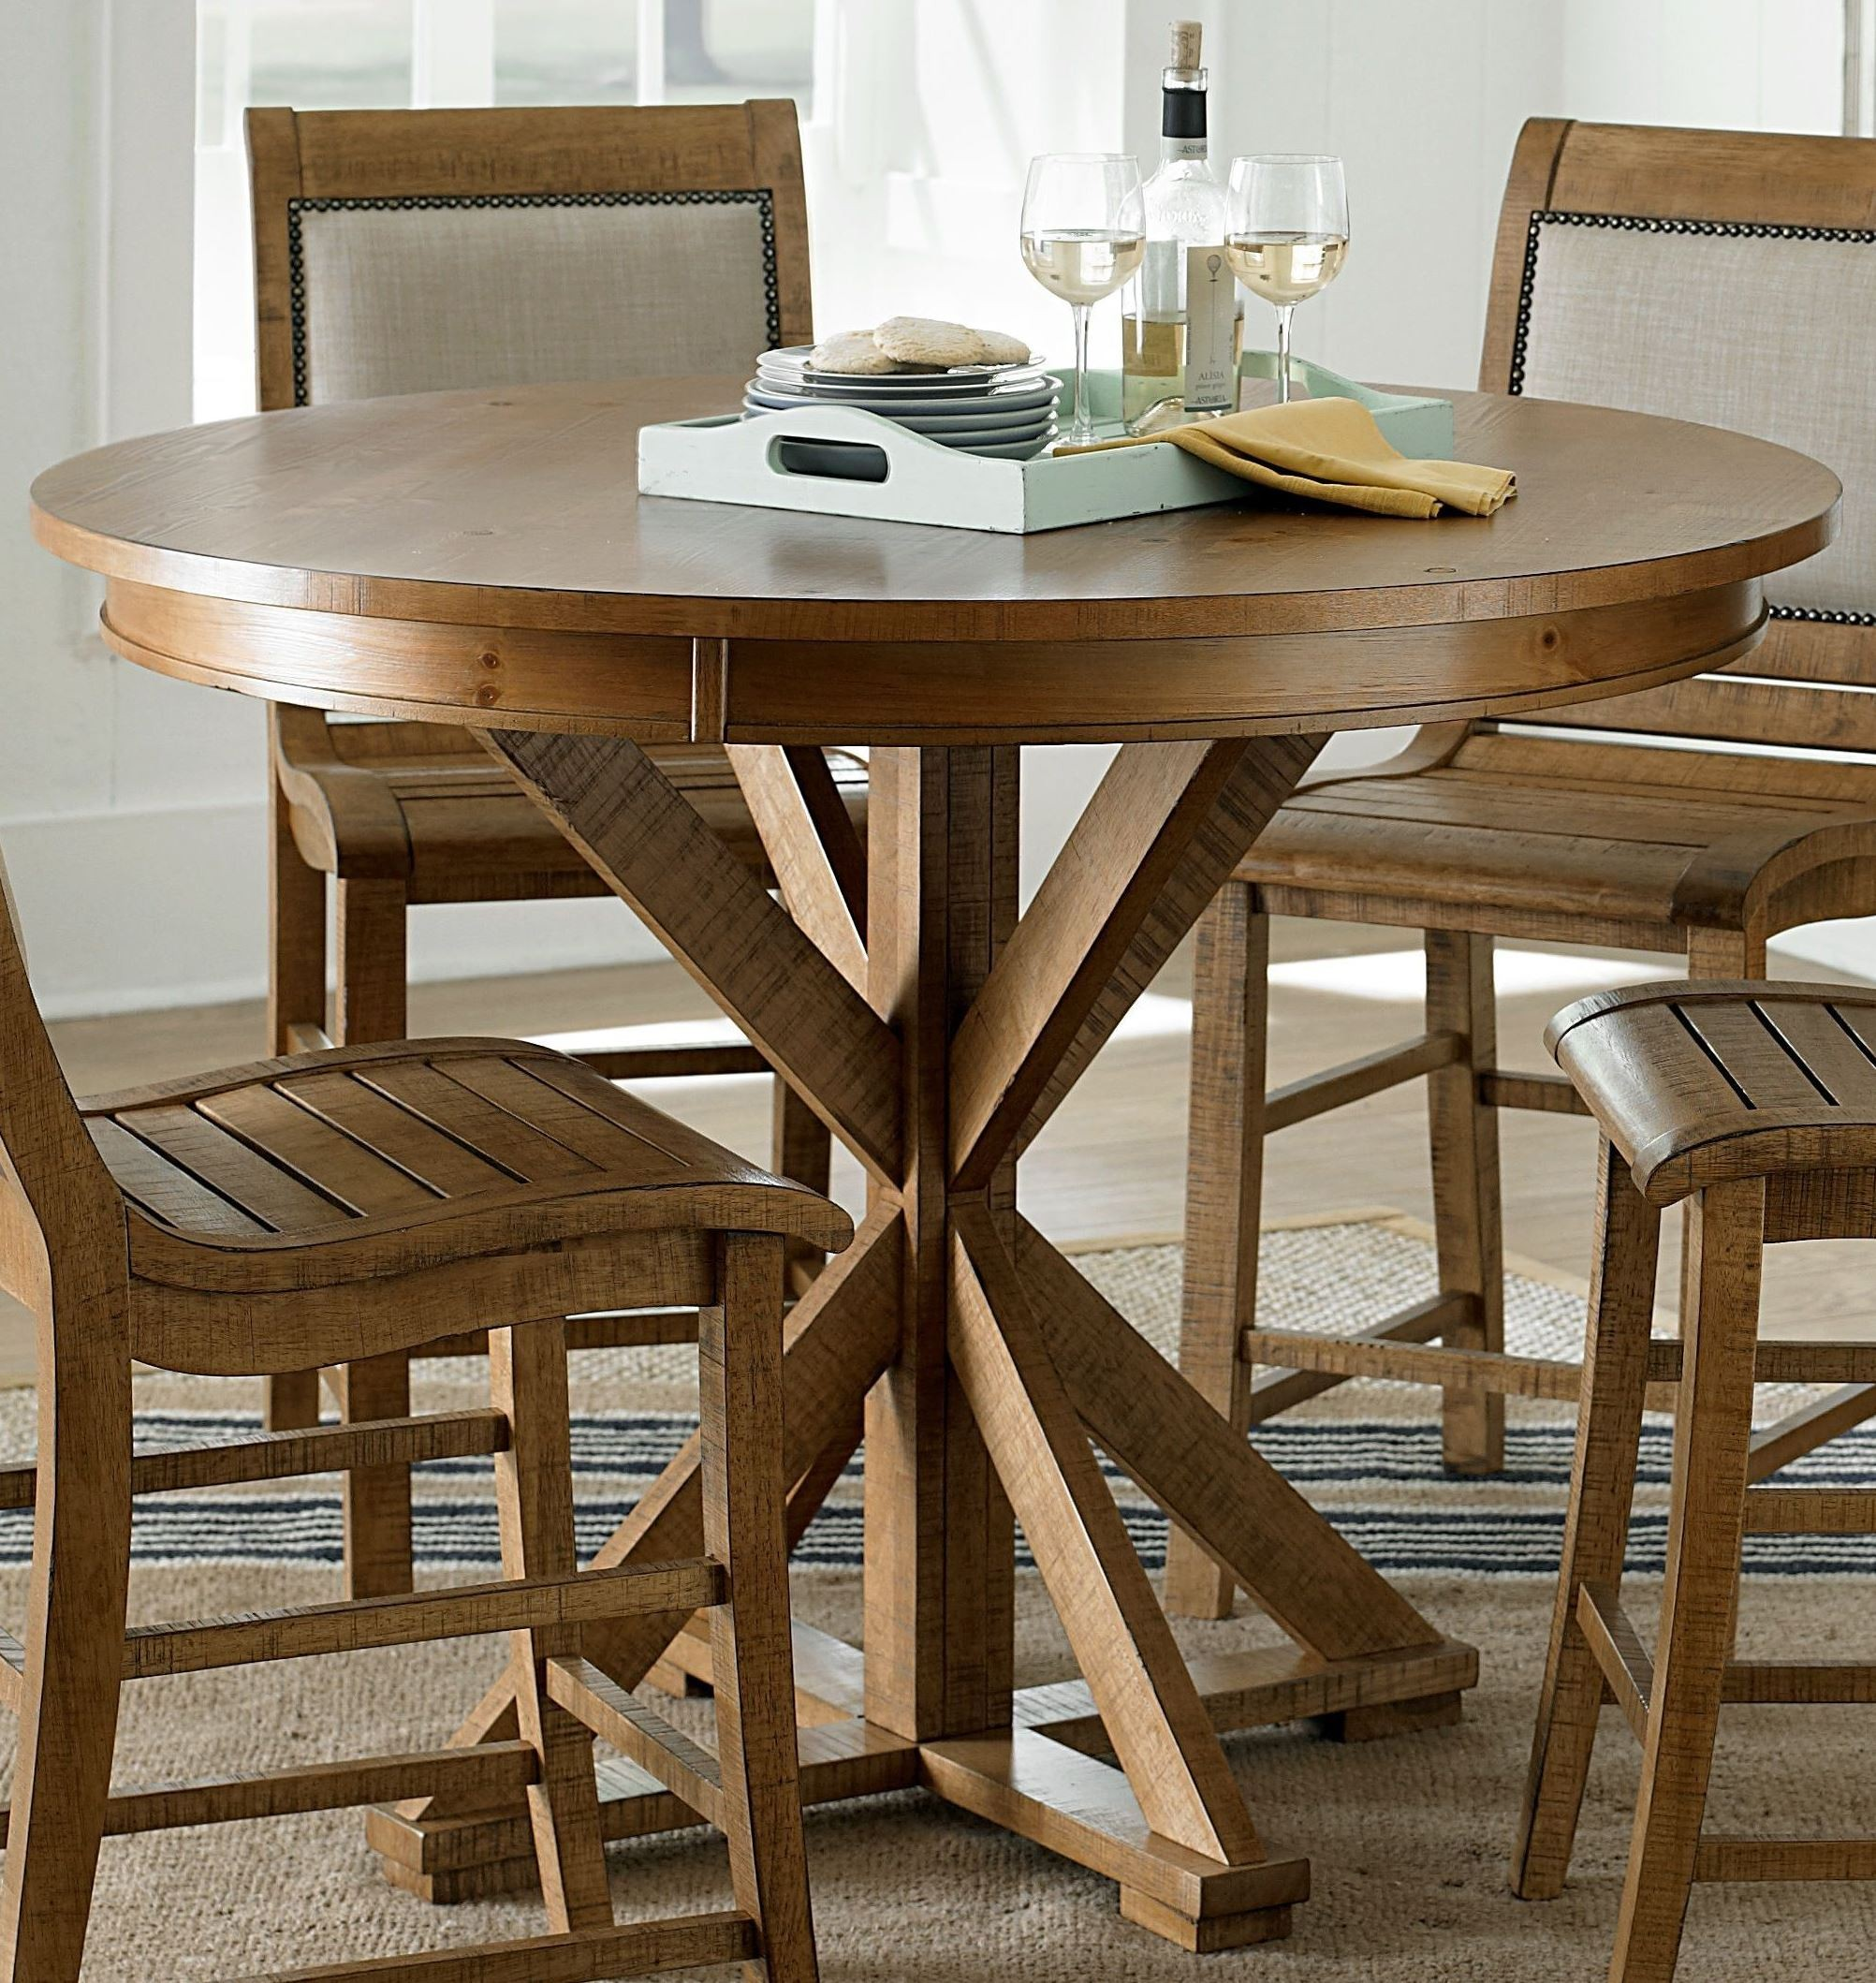 Willow Distressed Pine Counter Height Dining Table P808 15B 15T Progressive